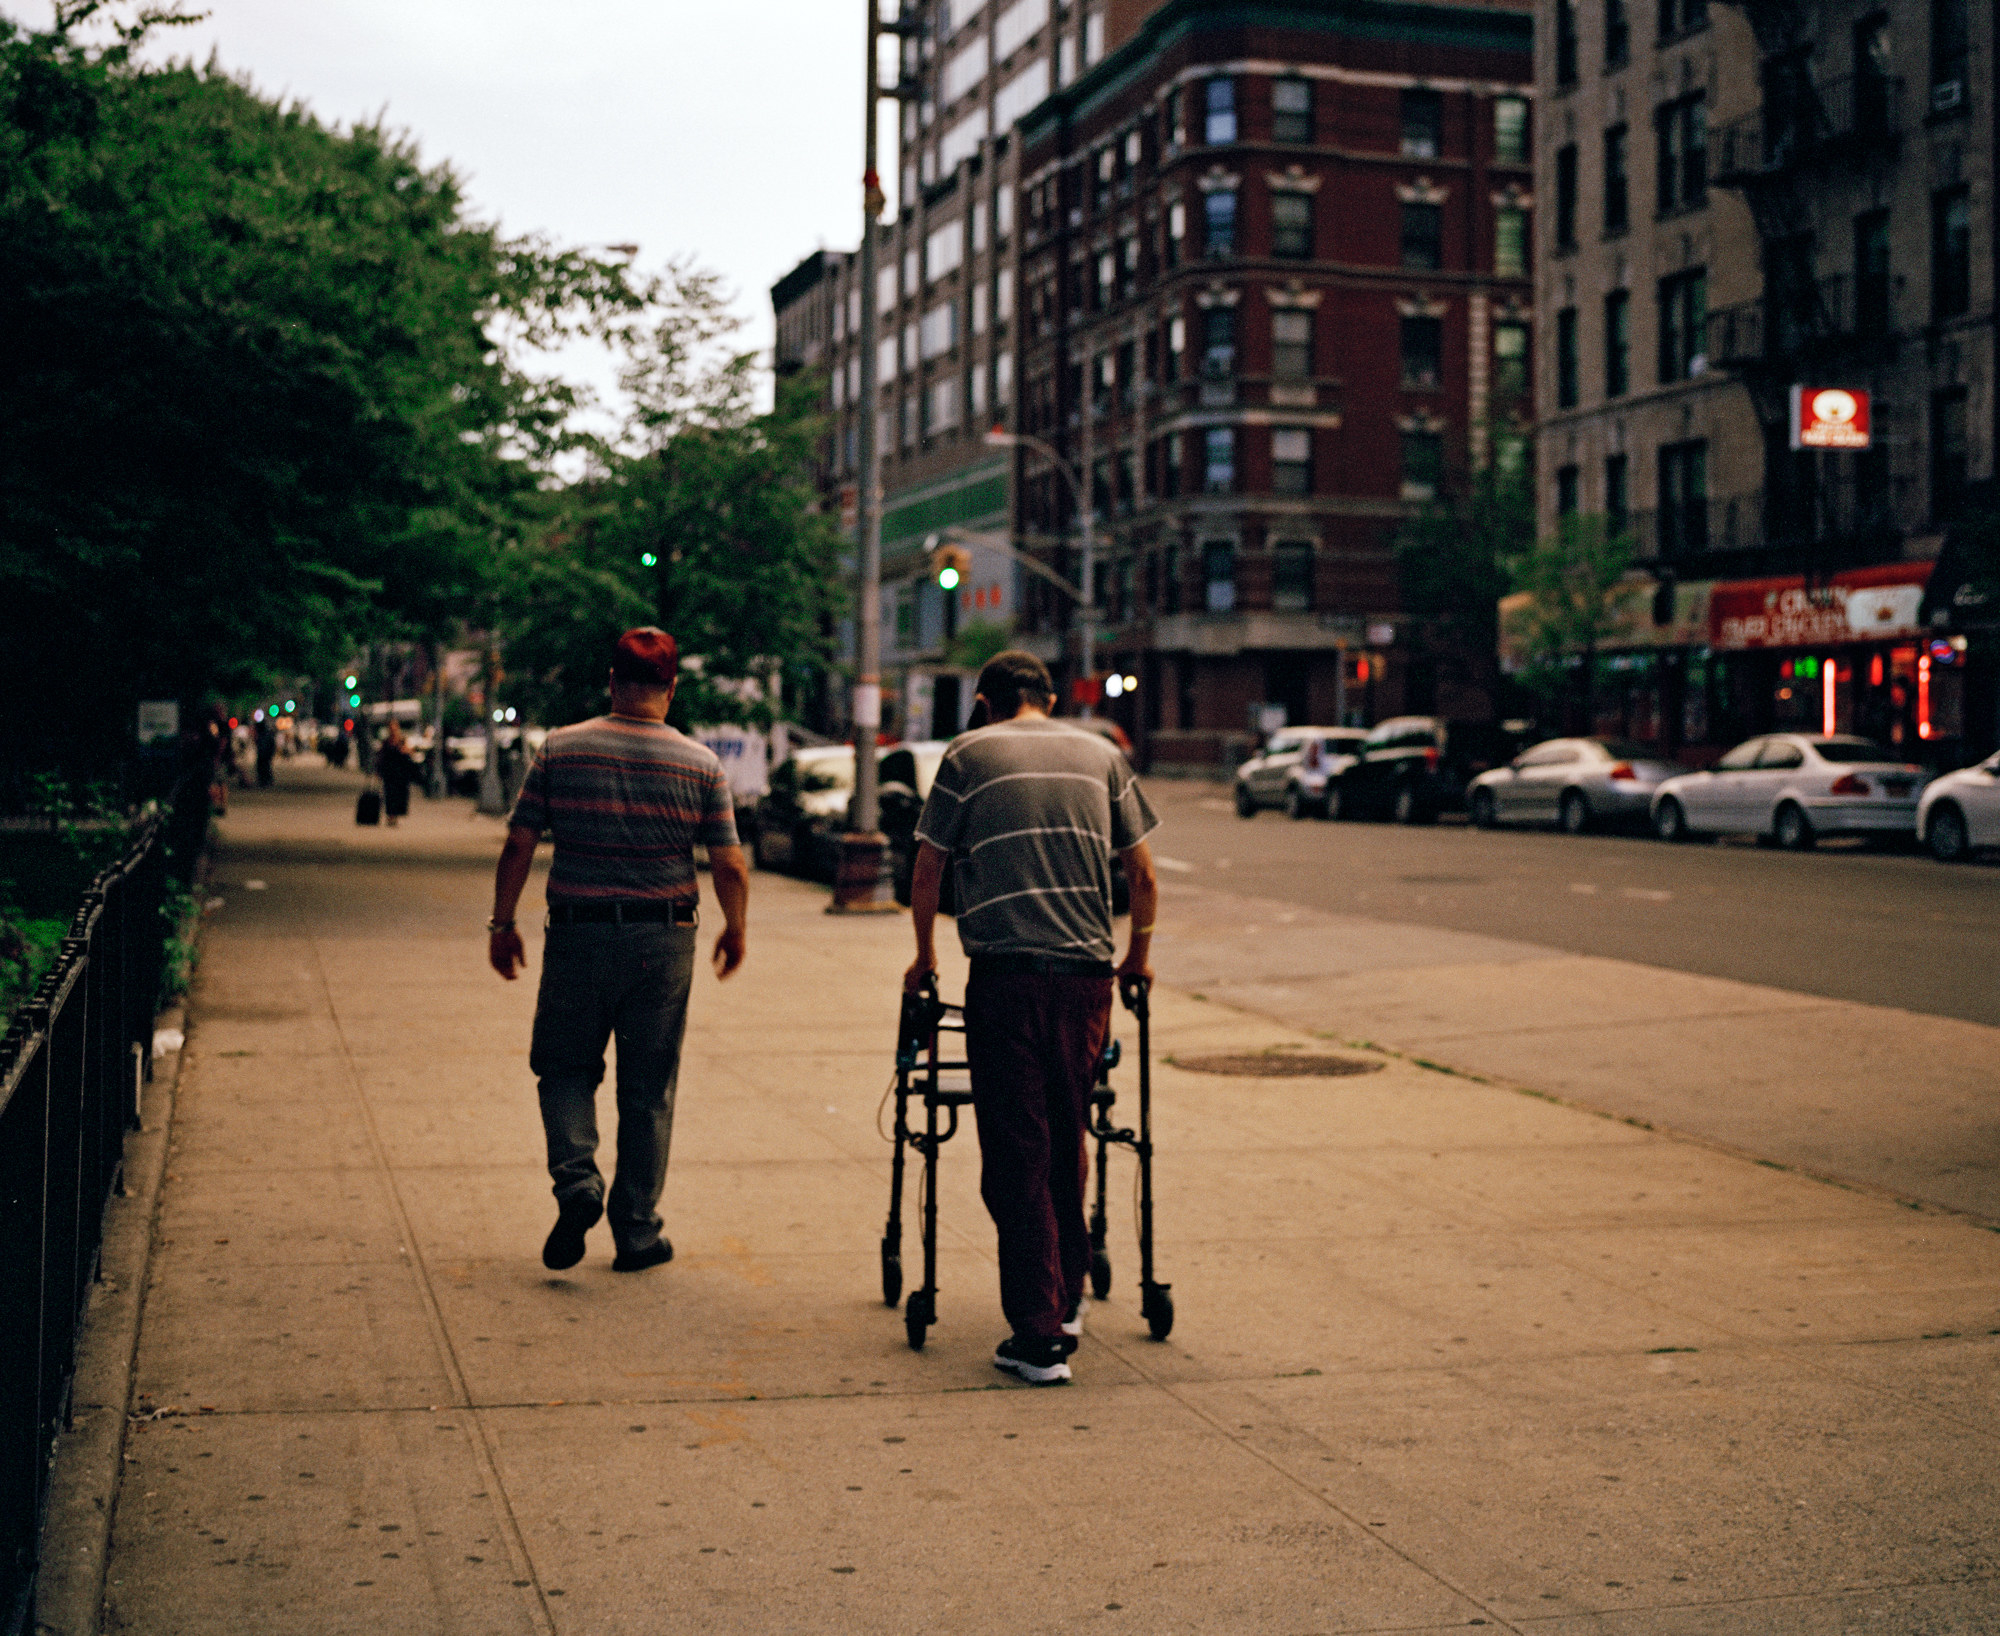 The photographer's father using a walker to walk down the street